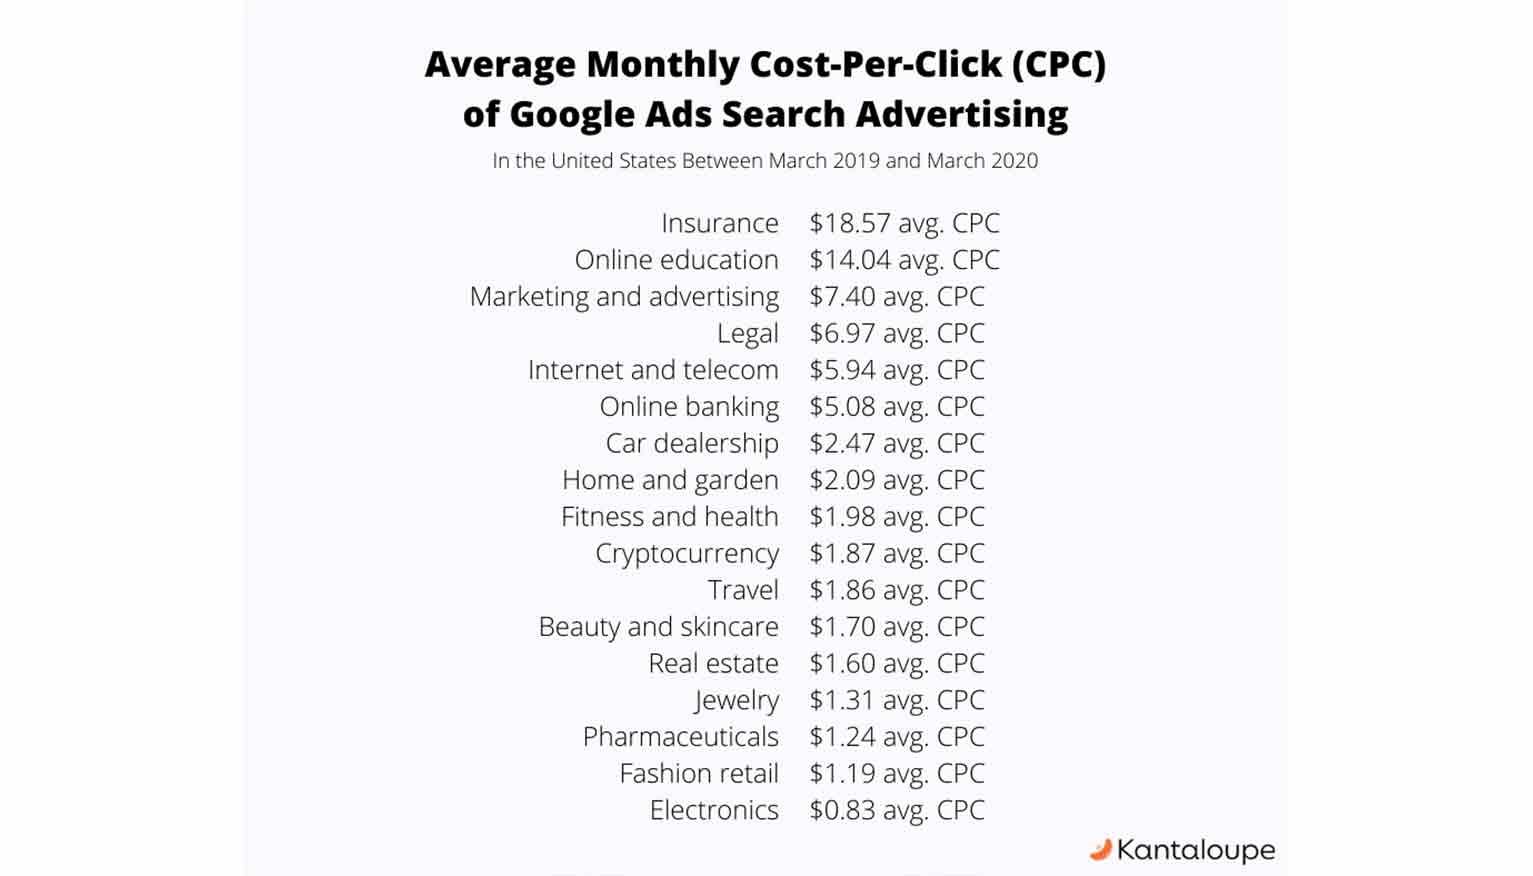 Here is the average monthly cost-per-click (CPC) in the U.S. in 2020 by industry.